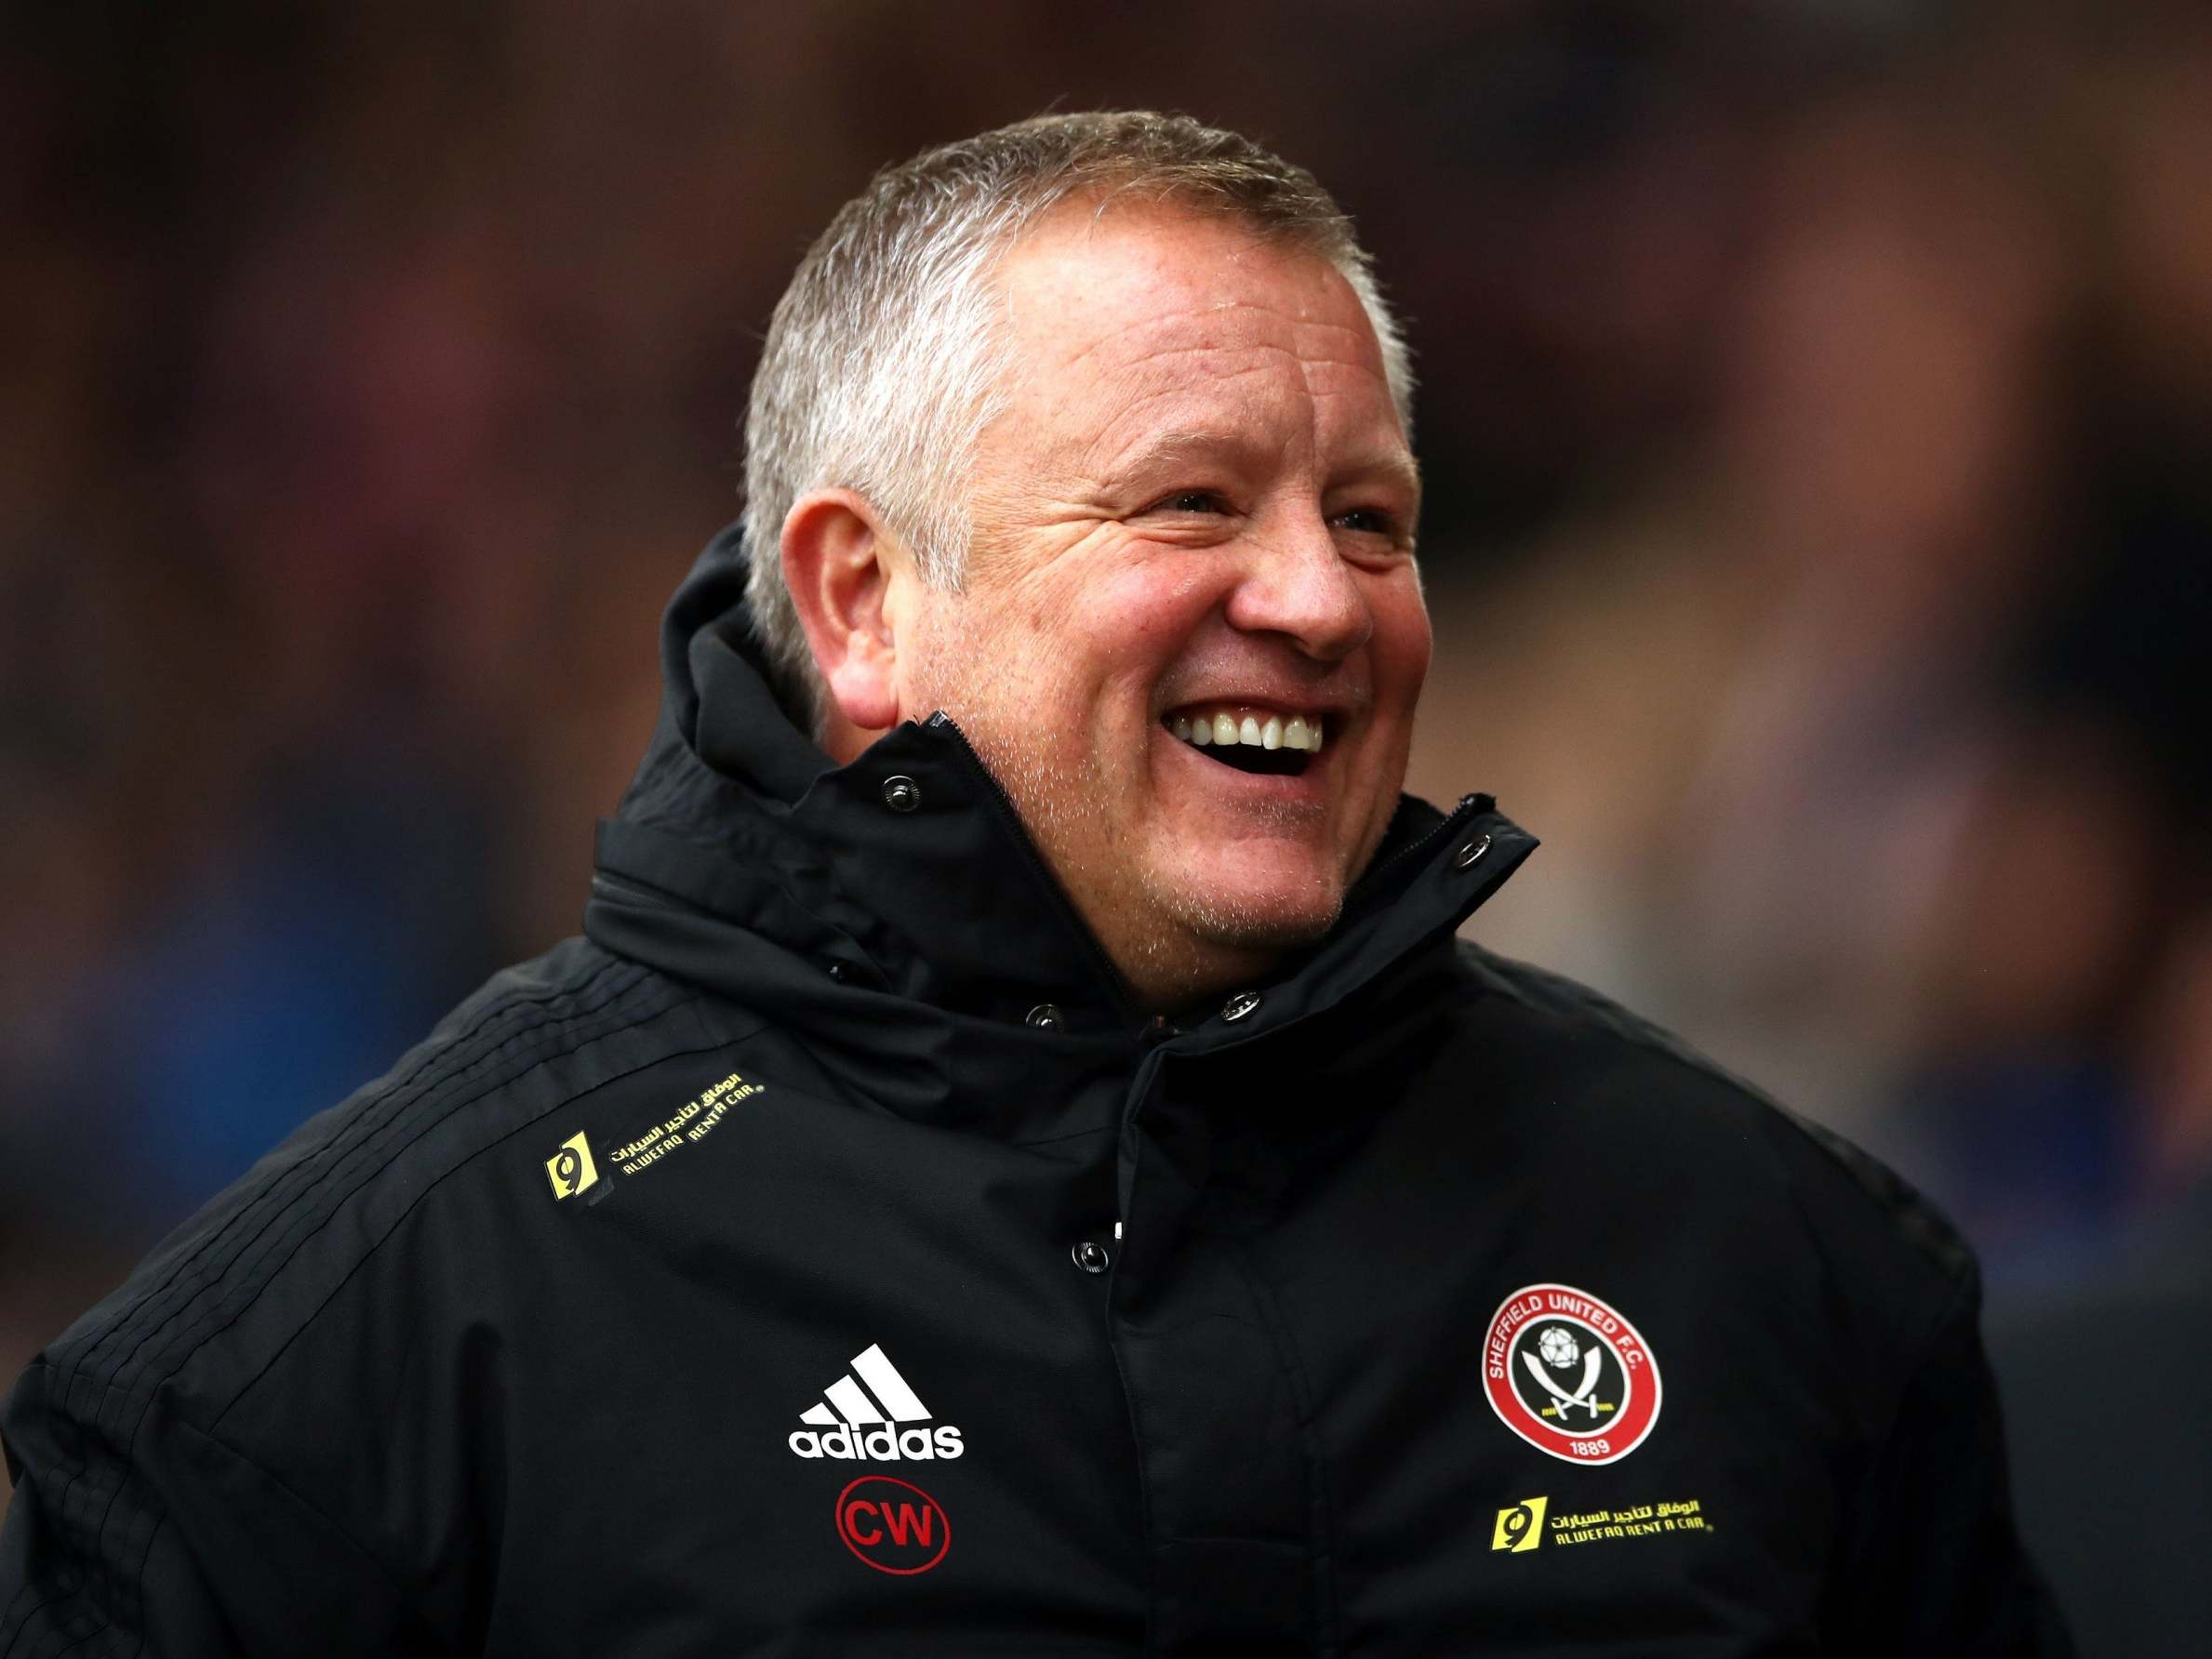 Premier League contact training 'has to come as quickly as possible', Chris Wilder insists